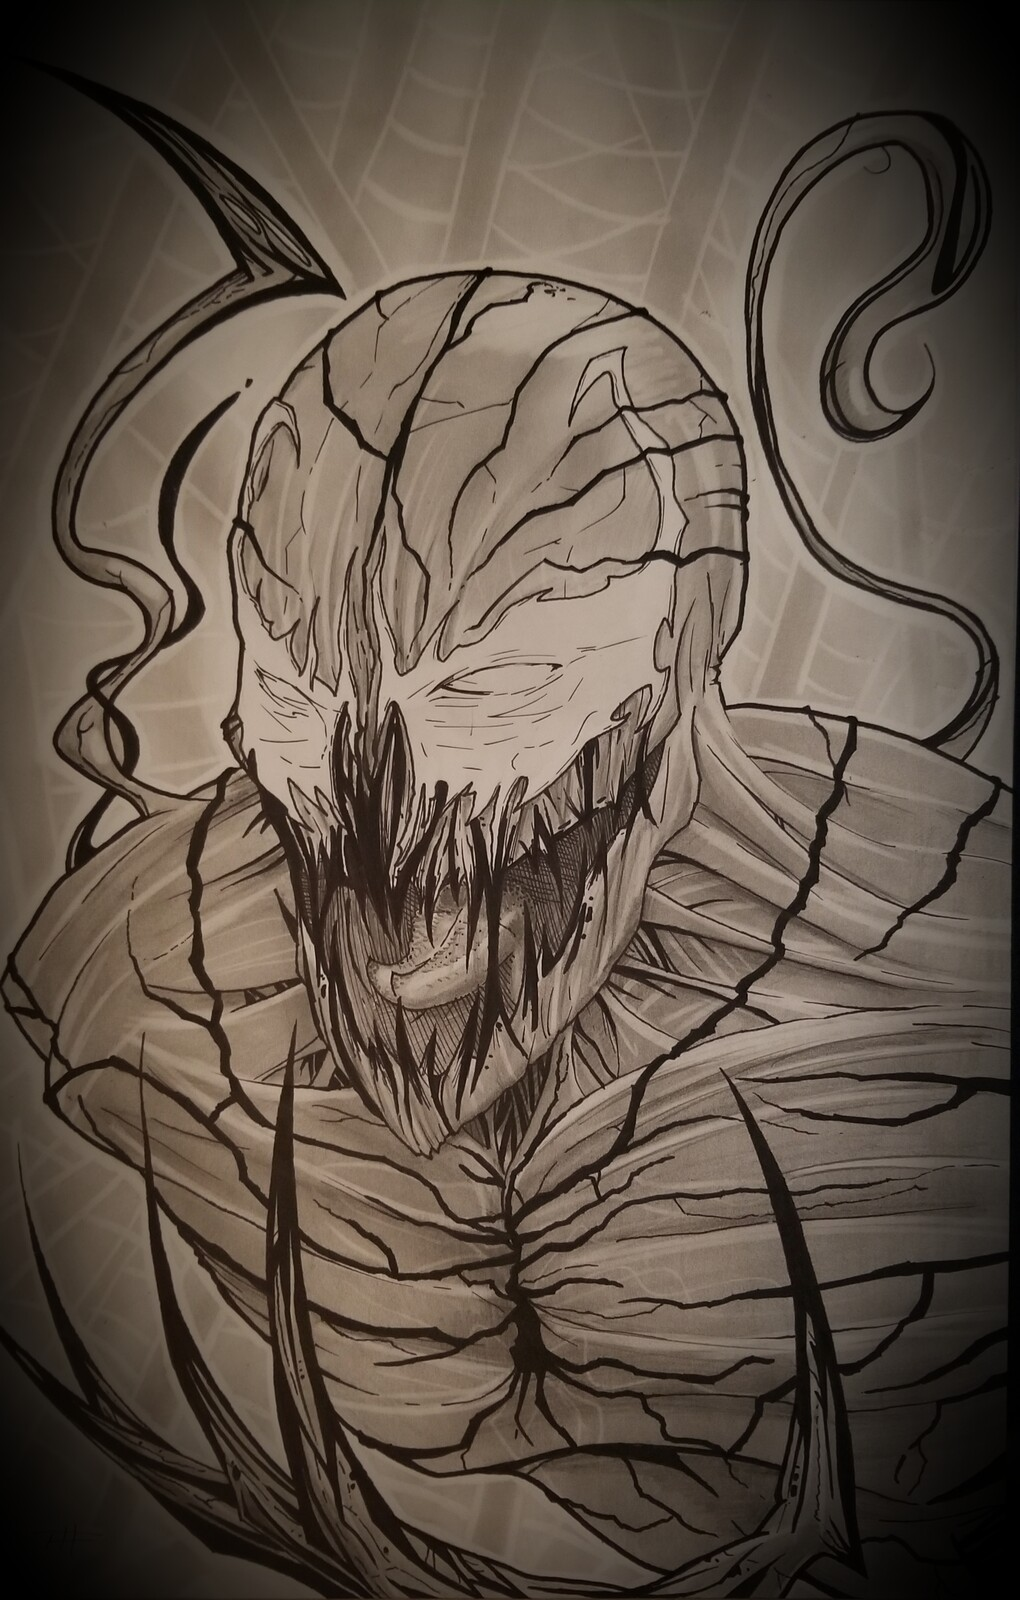 Carnage! The unmistakable Marvel villain. Graphite and ink.